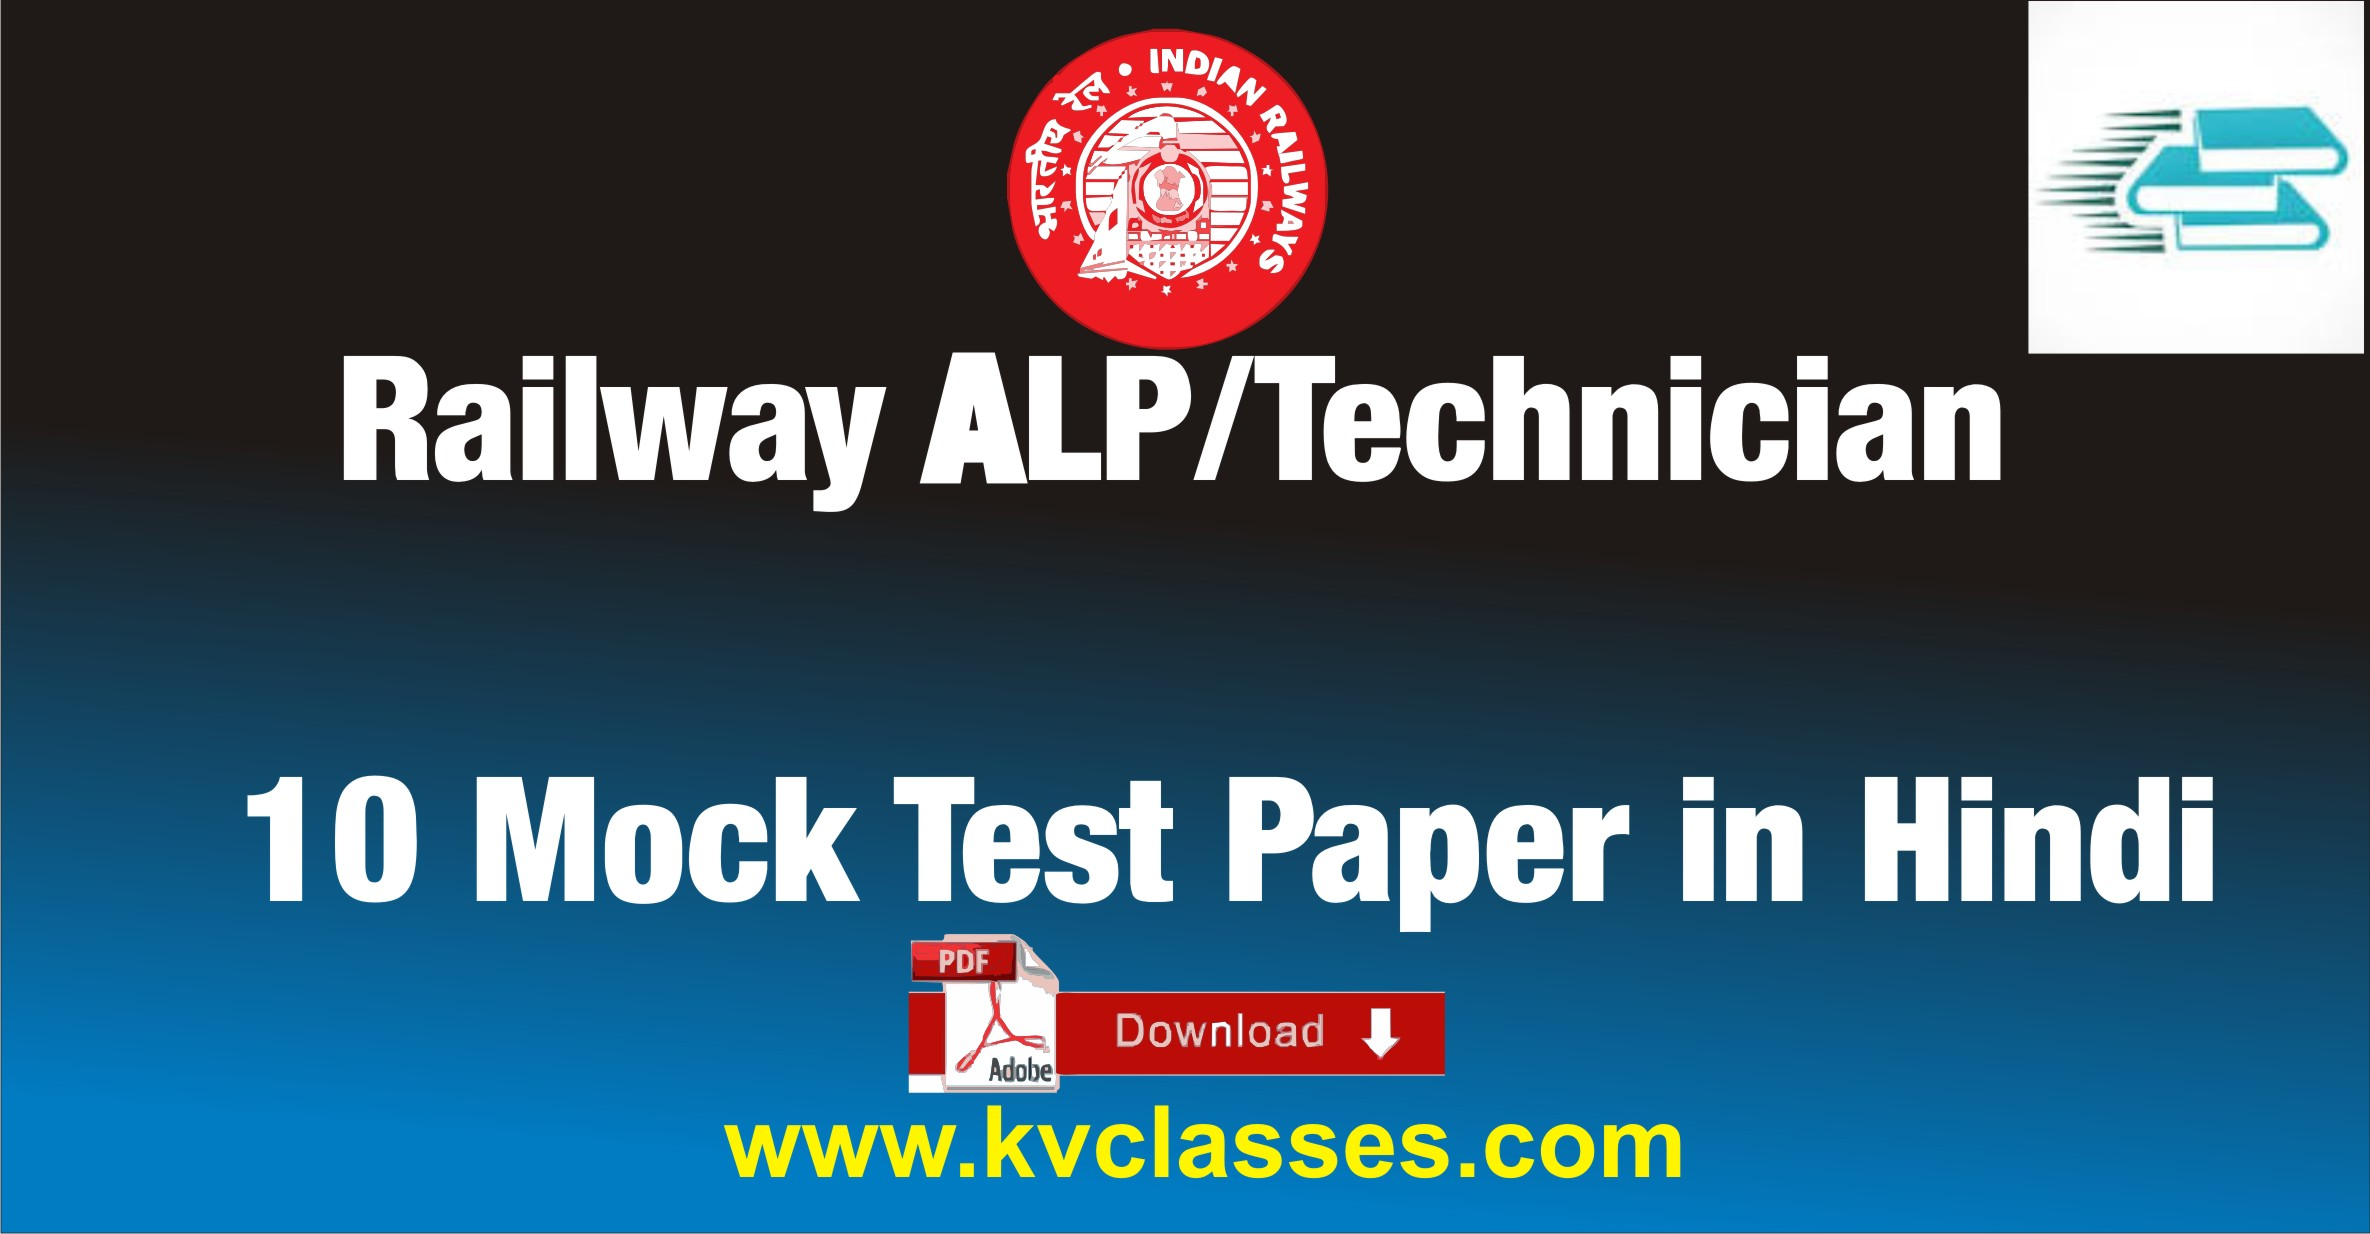 Railway ALP/Technician 10 Mock Test Paper in Hindi PDF